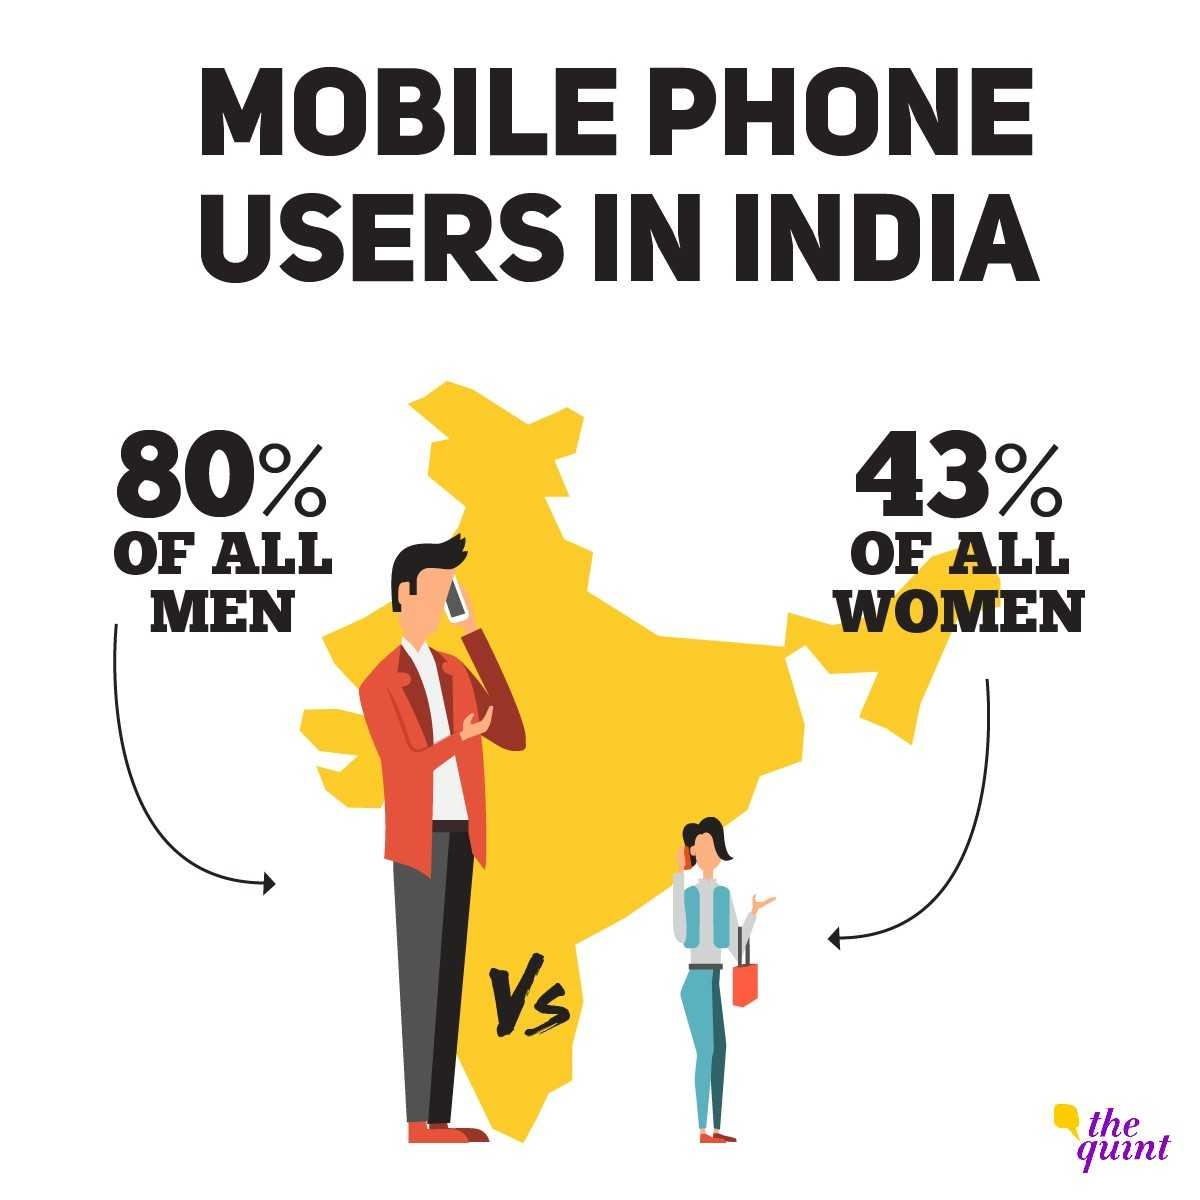 While 80% of men in India use mobile phones, only 43% of women have access to mobiles.